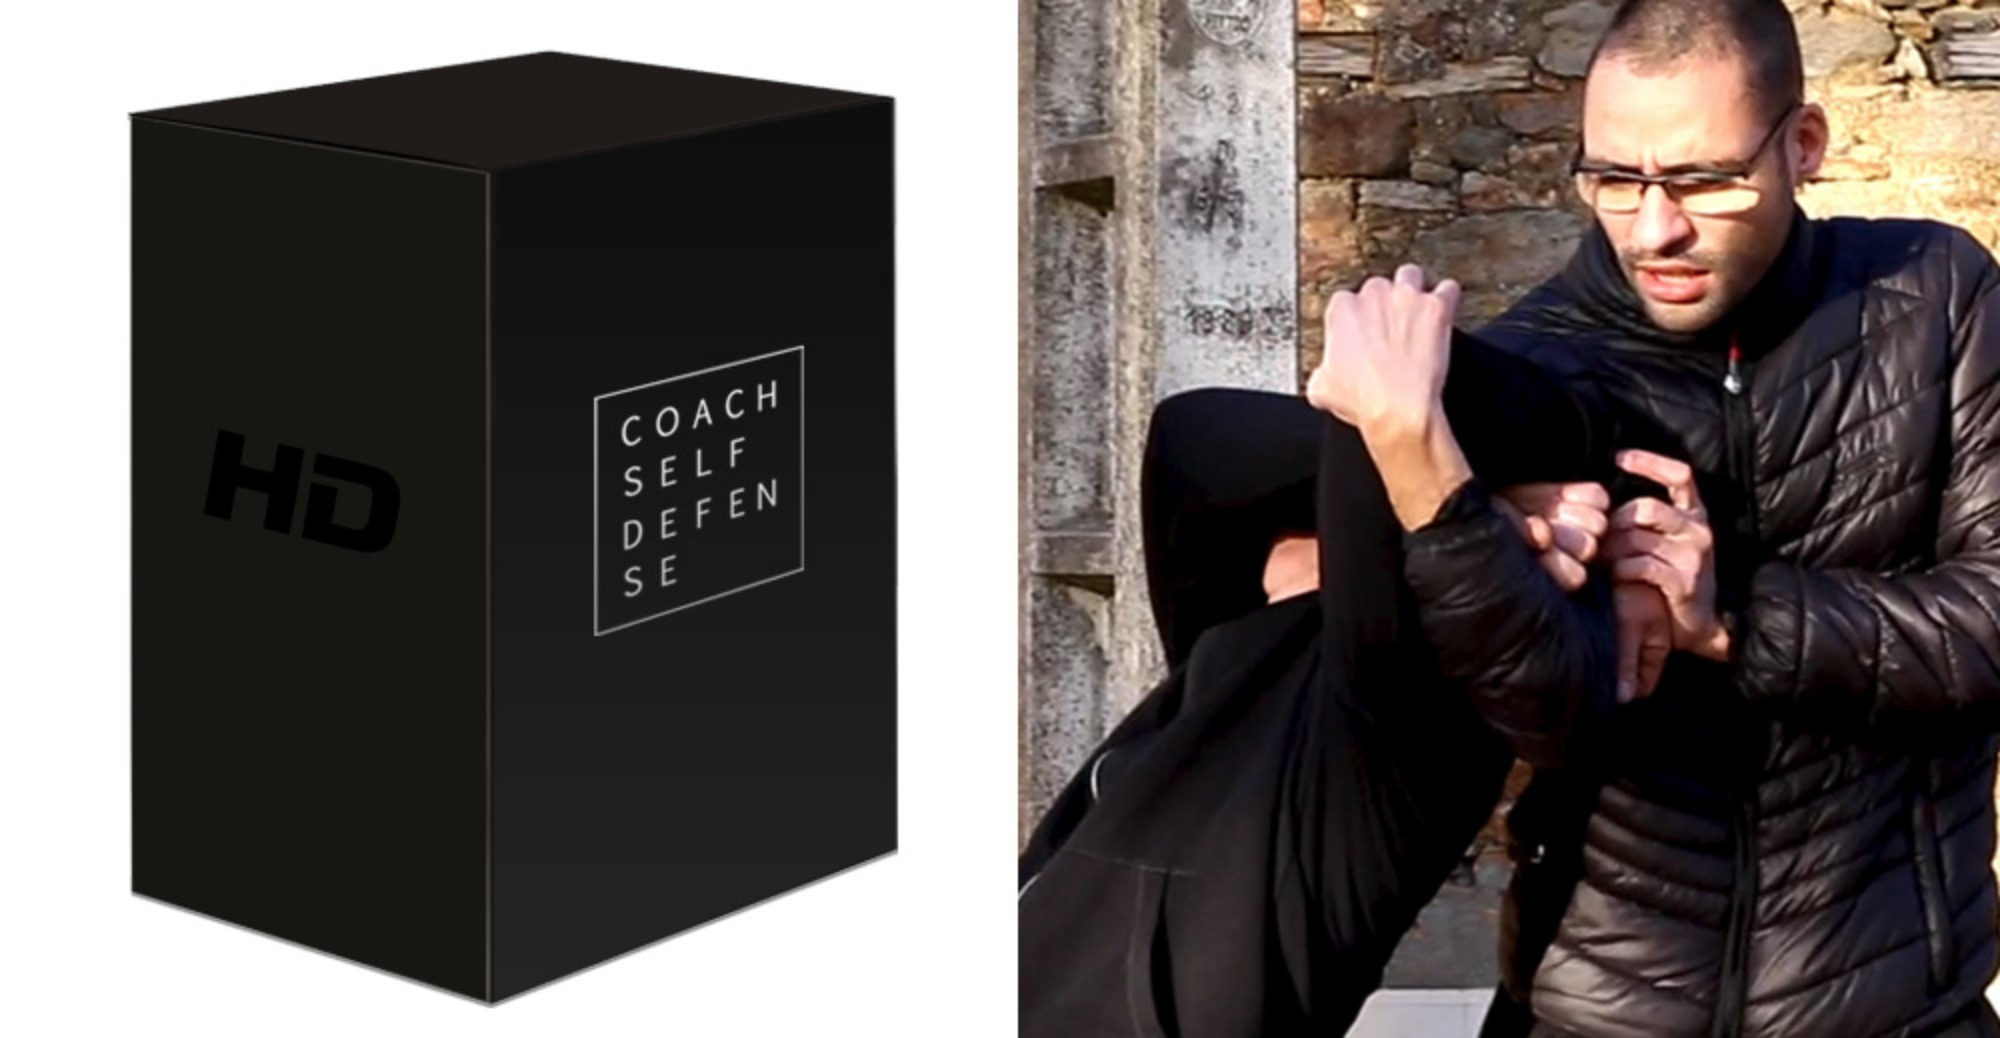 Kit de Survie Coach Self Defense